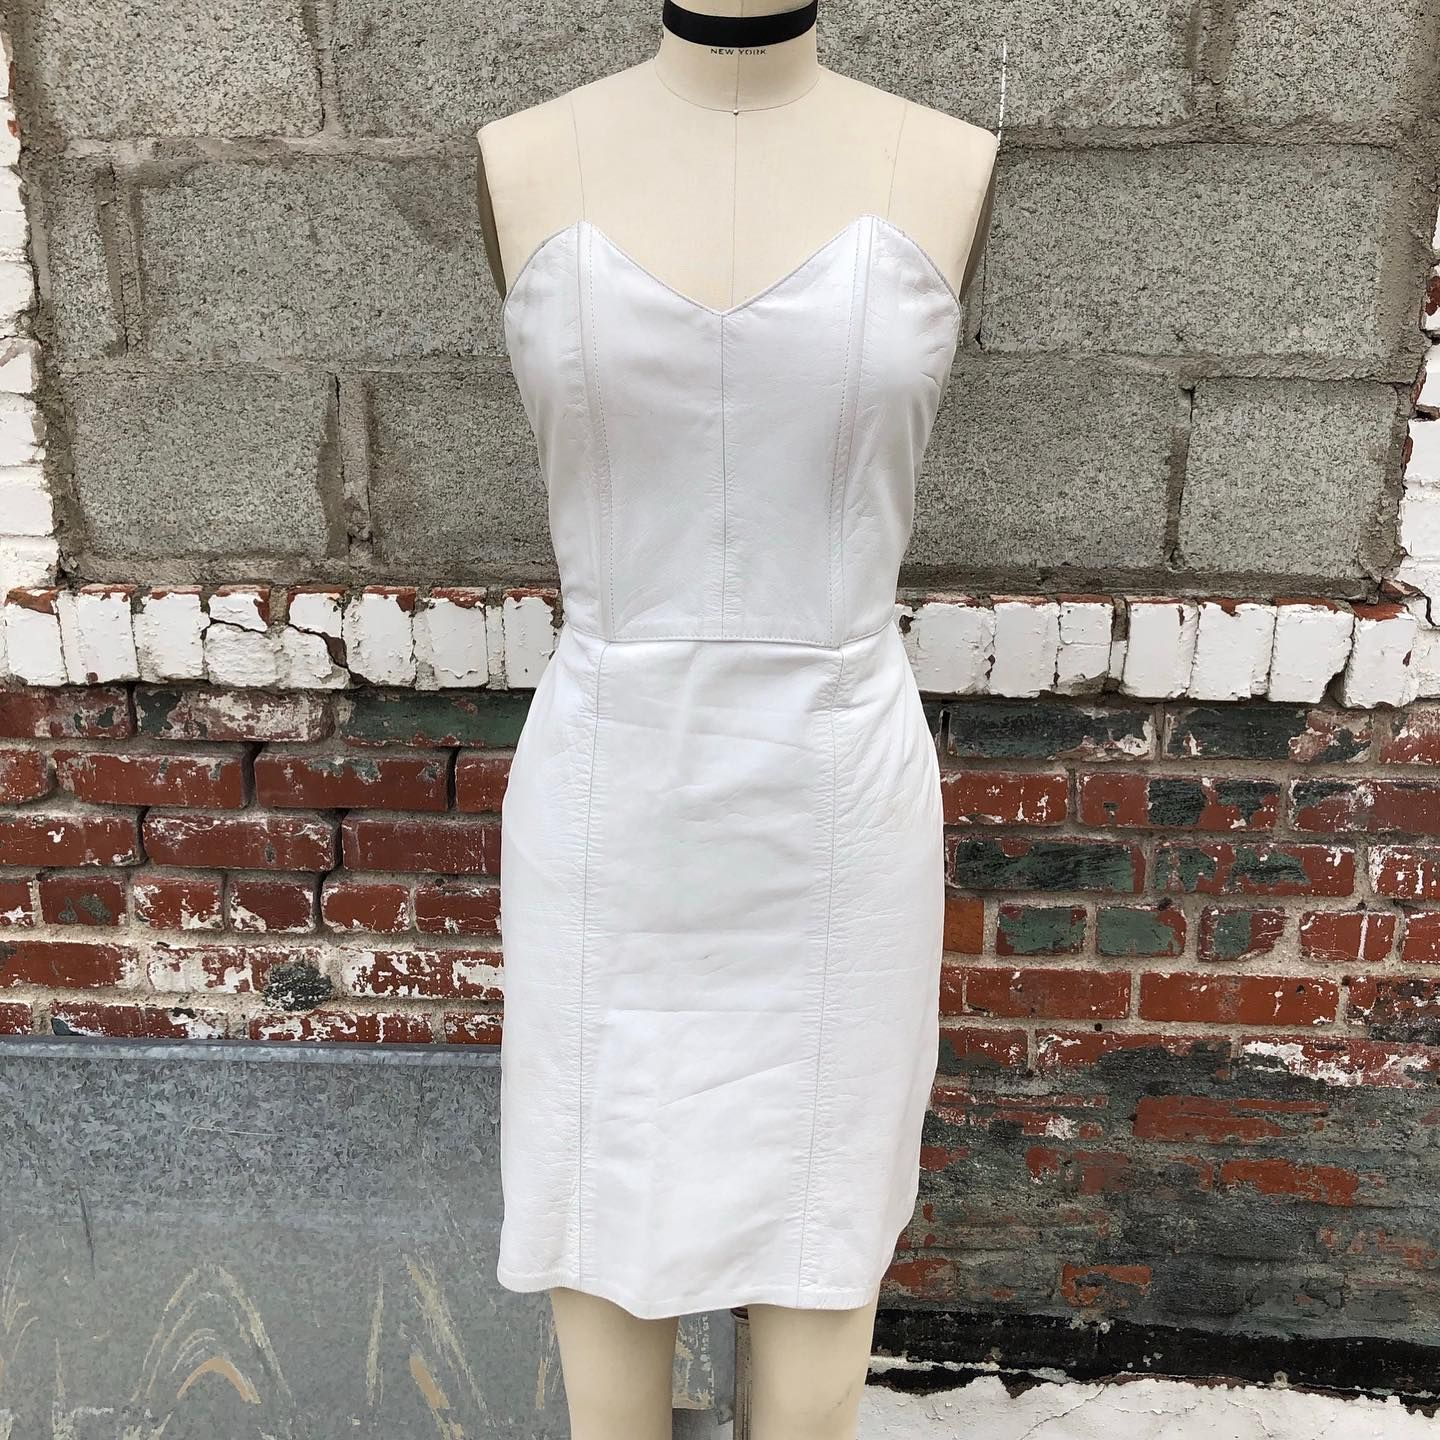 Did Someone Say Leather Dress This 80s Strapless White Leather Dress Will Bring Out The Rocker In You Avail White Leather Dress Leather Dress 1980 S Fashion [ 1440 x 1440 Pixel ]